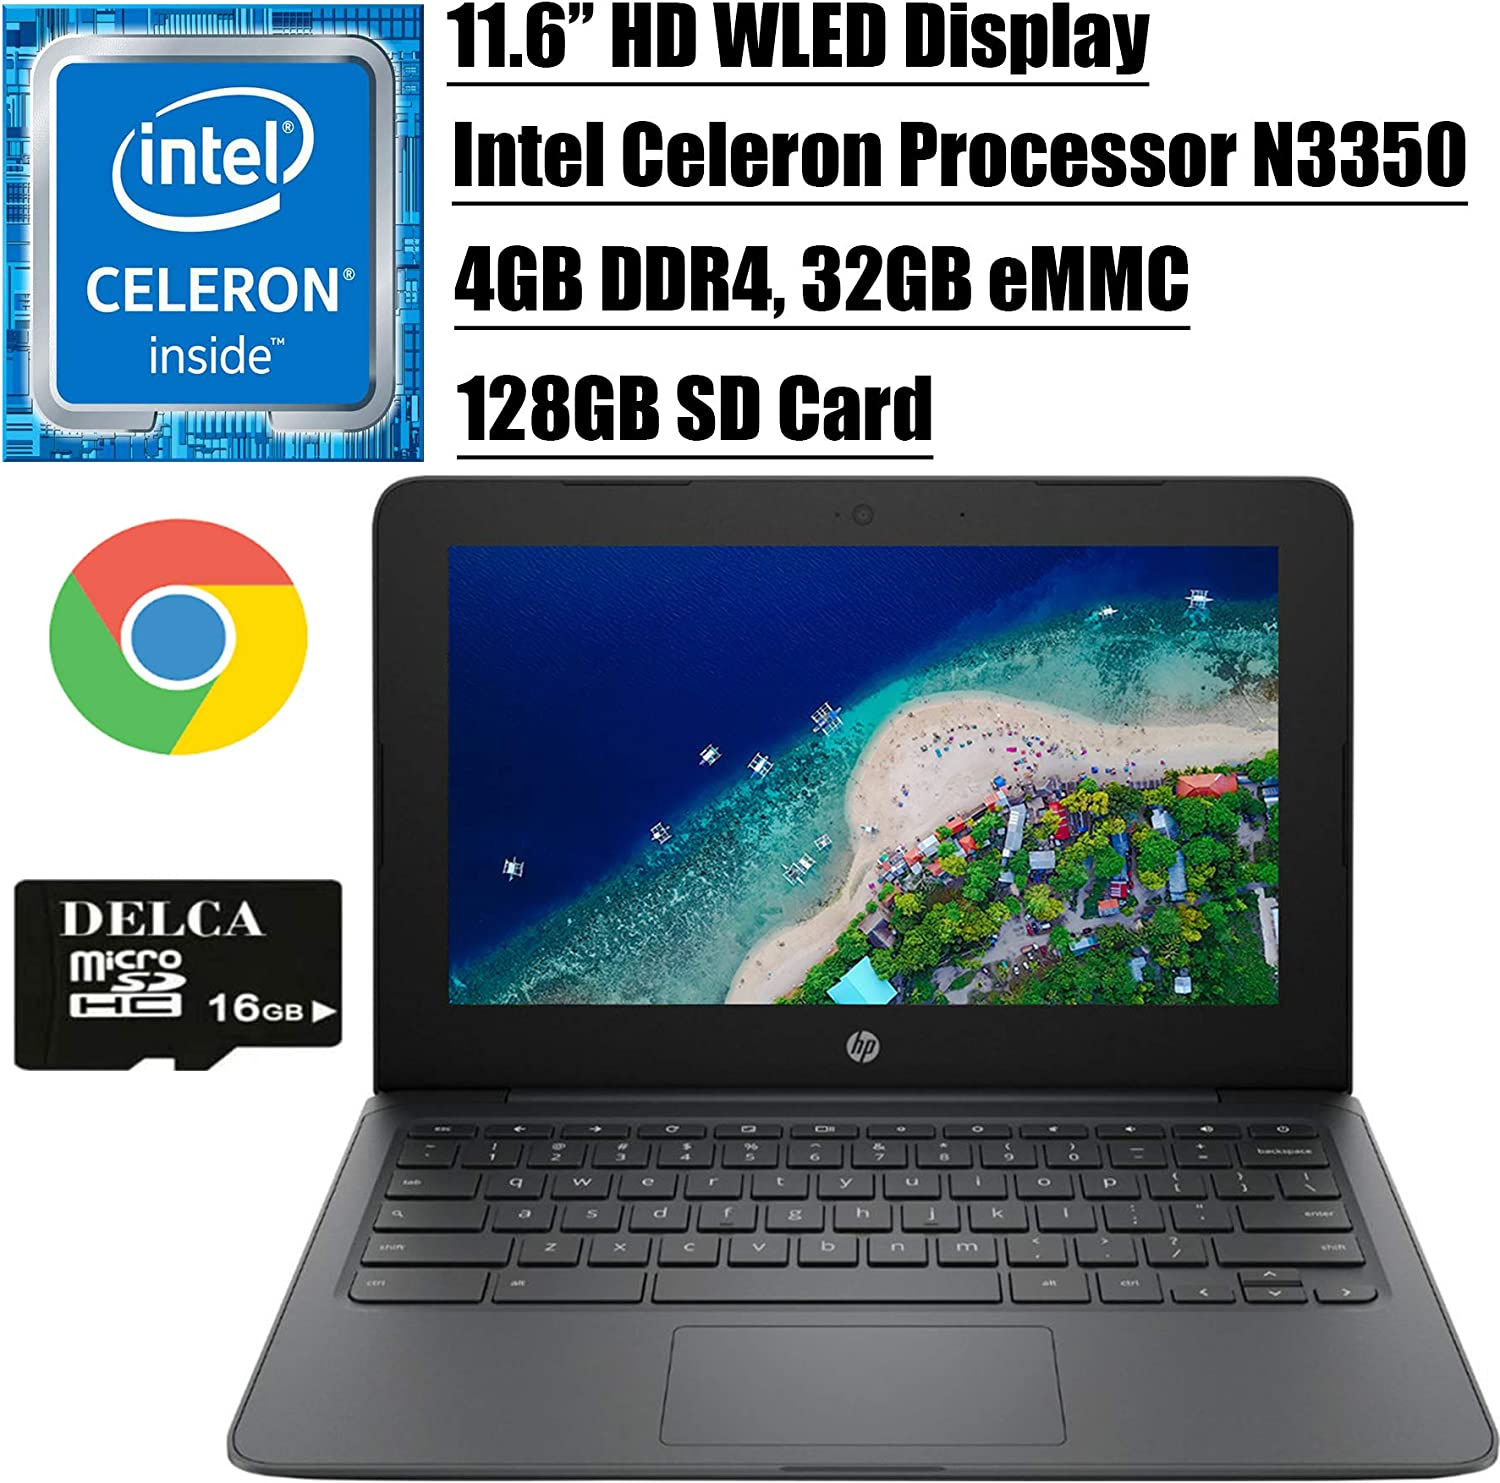 "HP Chromebook 11 2020 Flagship Laptop Computer I 11.6"" HD WLED Display I Intel Celeron Processor N3350 I 4GB DDR4 32GB eMMC + 128GB SD Card I Webcam WiFi Type C Chrome OS + Delca 16GB Micro SD Card"